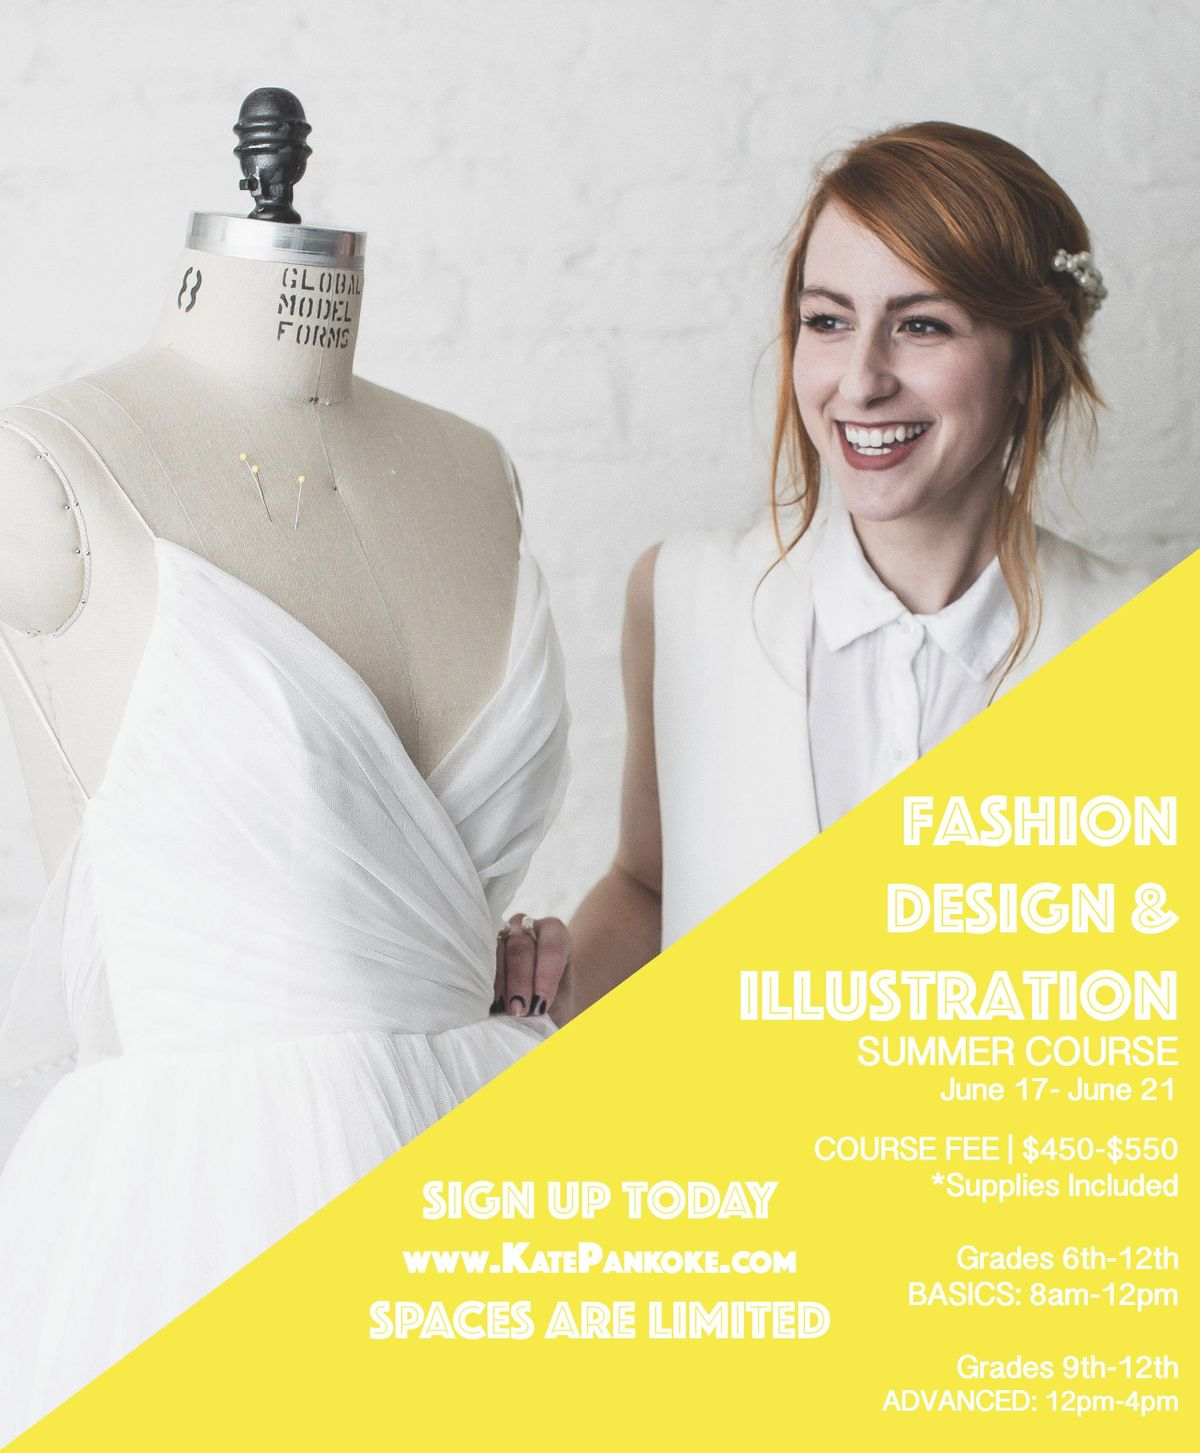 Fashion Design Summer Class taught by Project Runway All Star